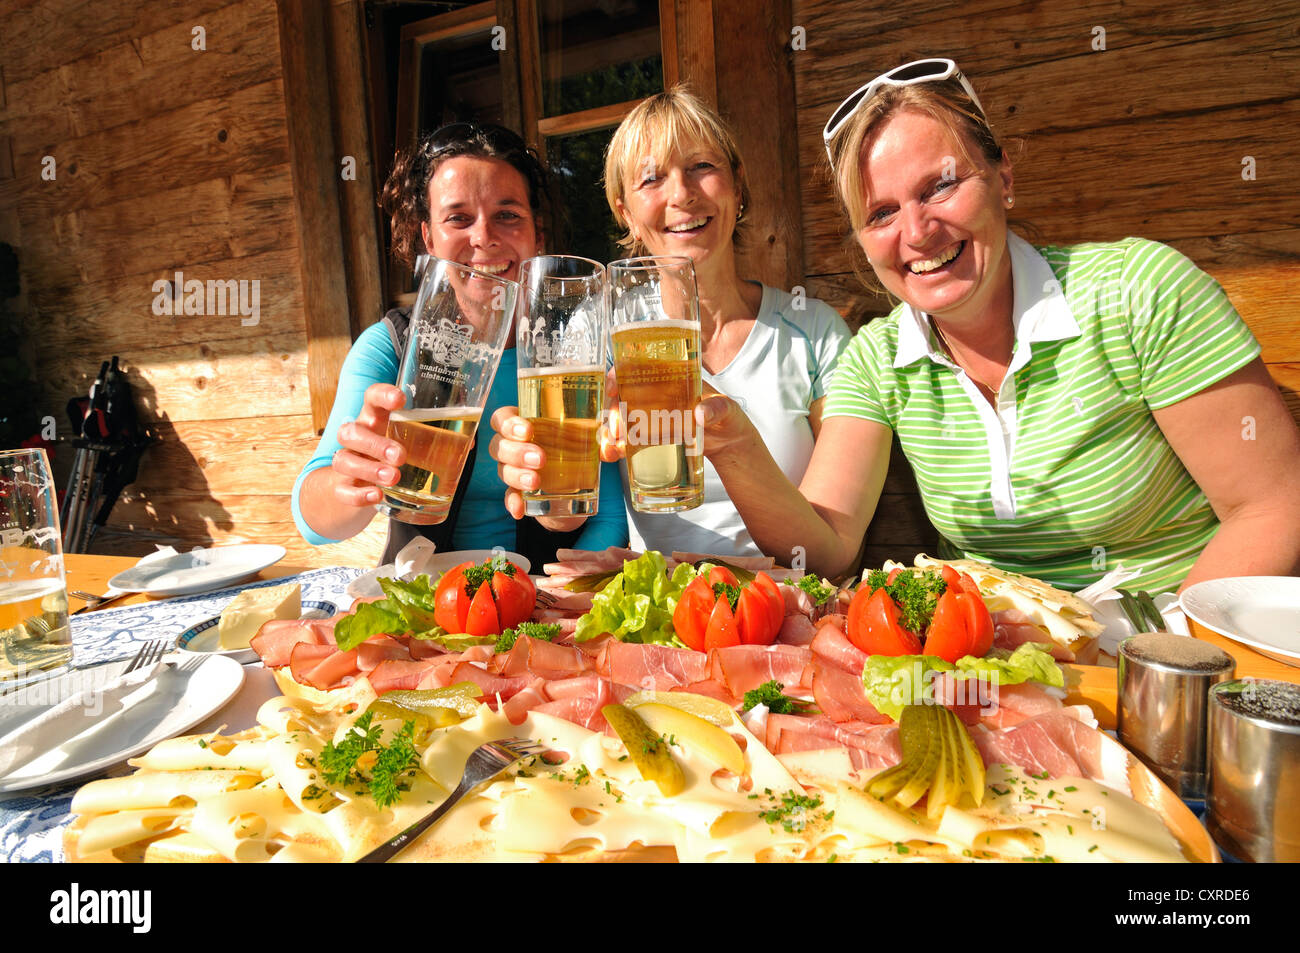 Women having a snack platter and beer after a hike Stock Photo